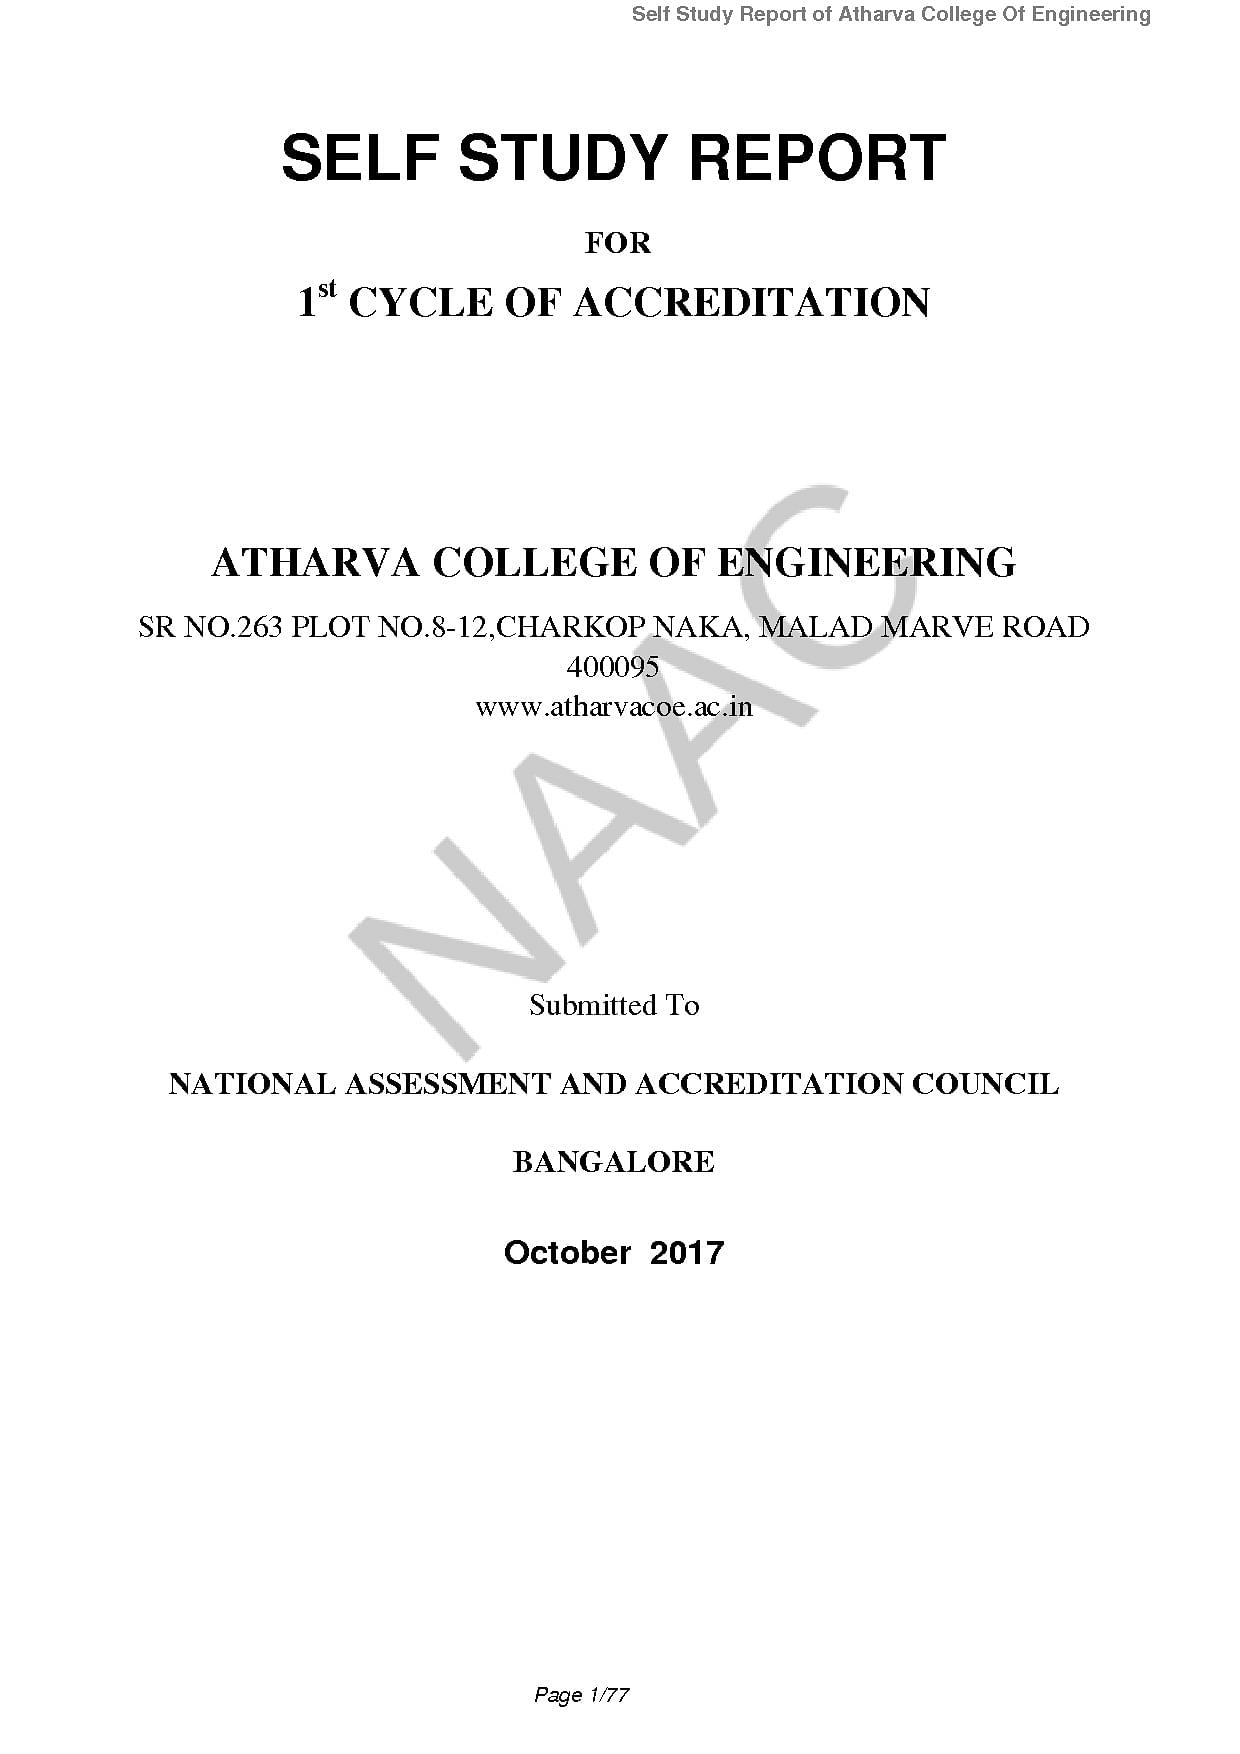 Atharva College of Engineering, Mumbai - Admissions, Contact